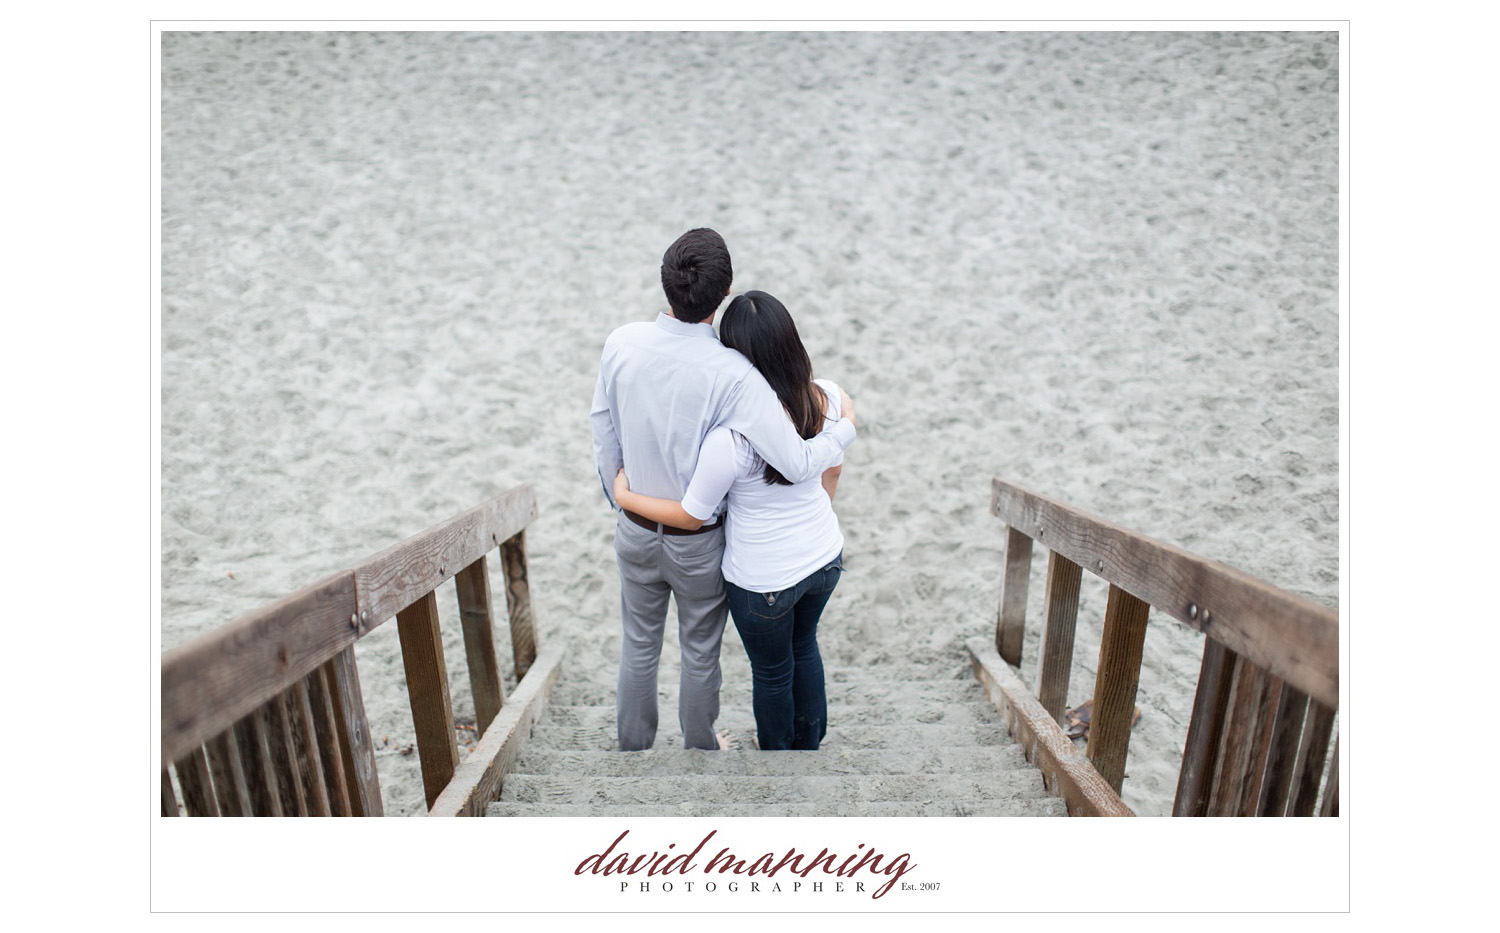 Del-Mar-Ramona-Julian-Engagement-Photos-David-Manning-Photographers-0004.jpg